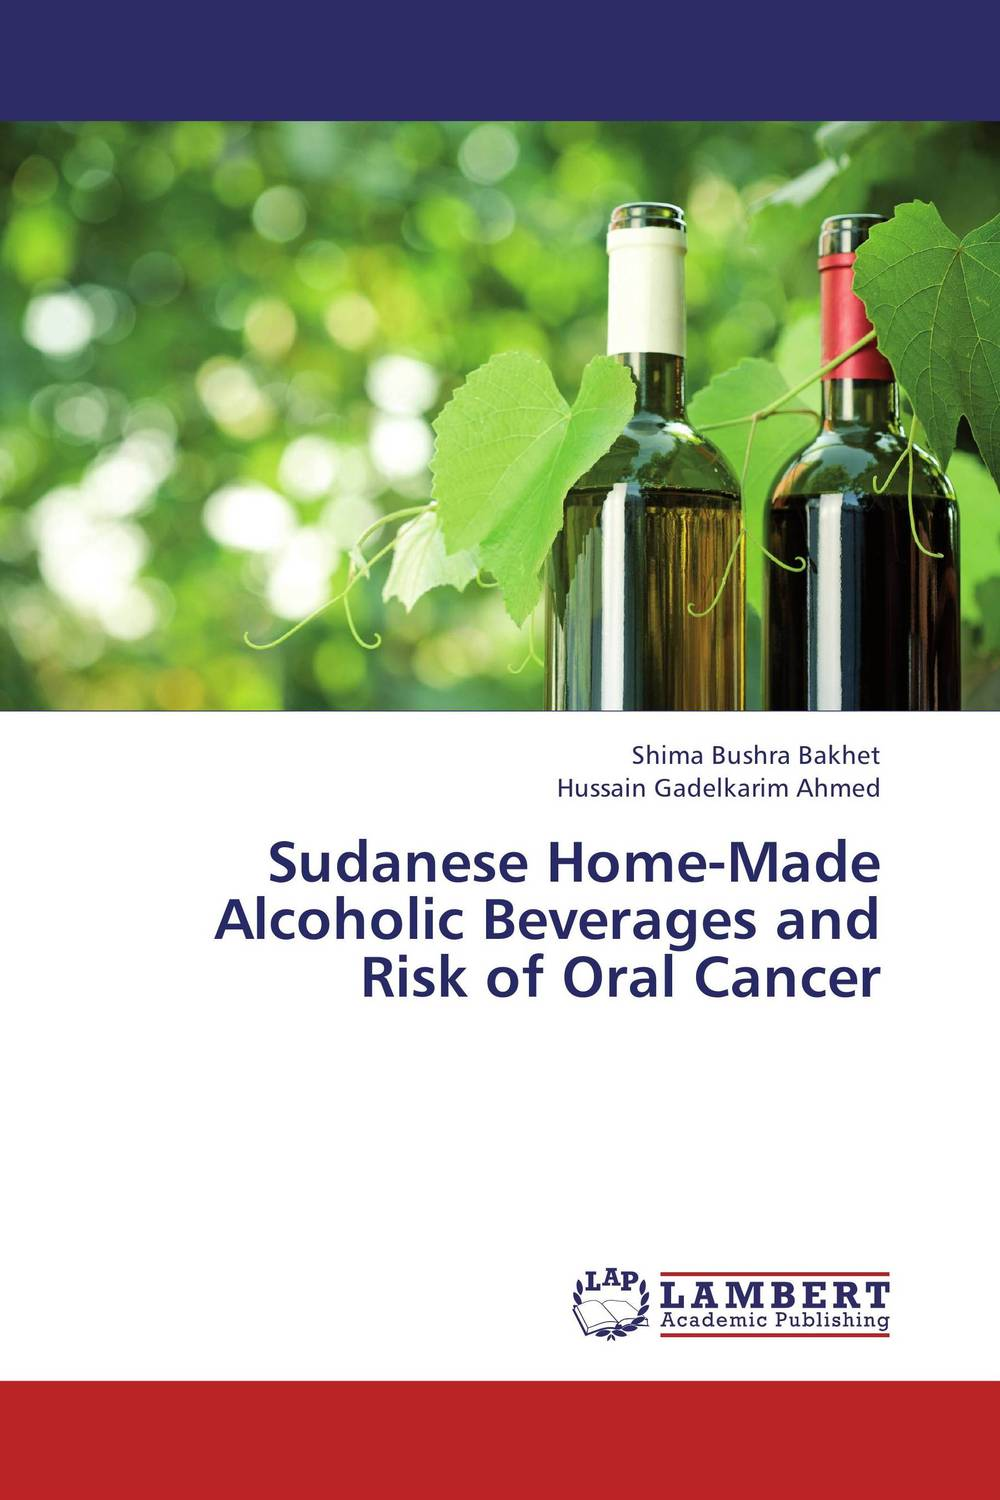 Sudanese Home-Made Alcoholic Beverages and Risk of Oral Cancer